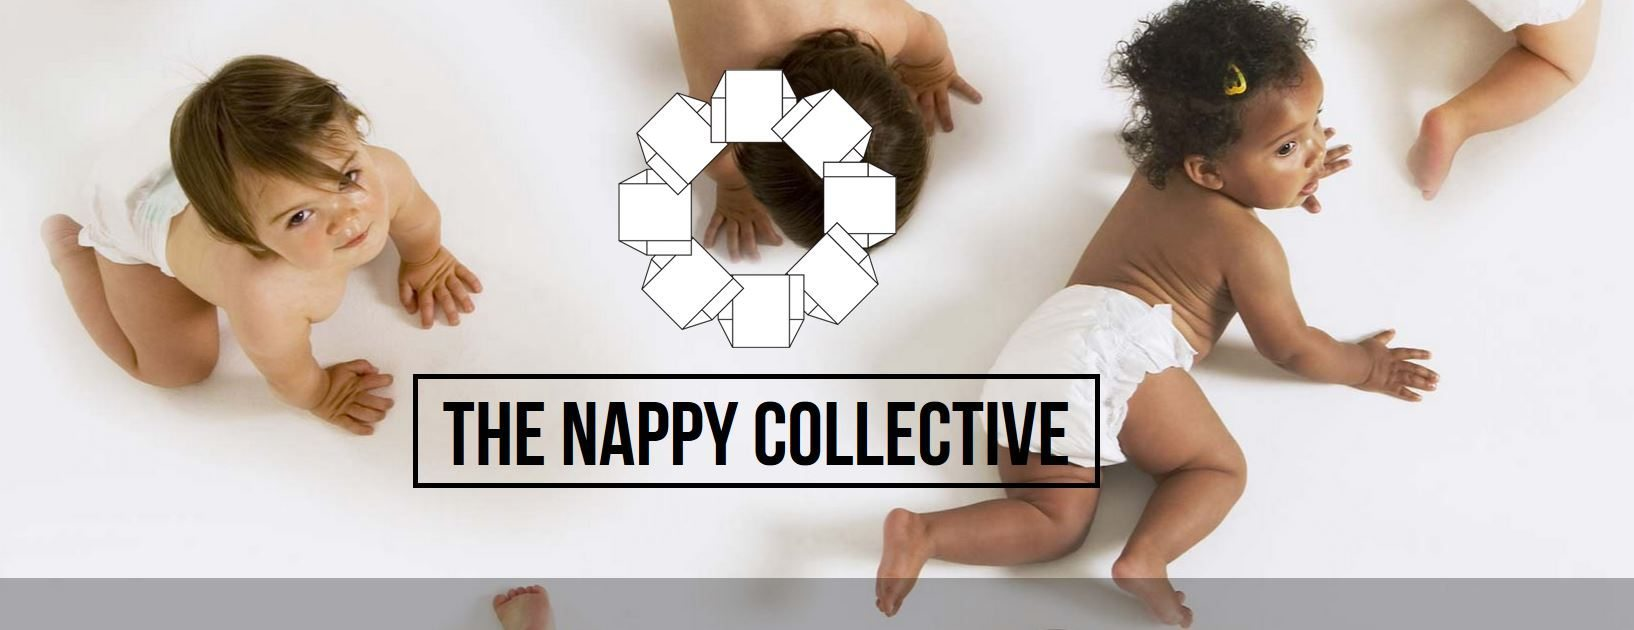 thenappycollective